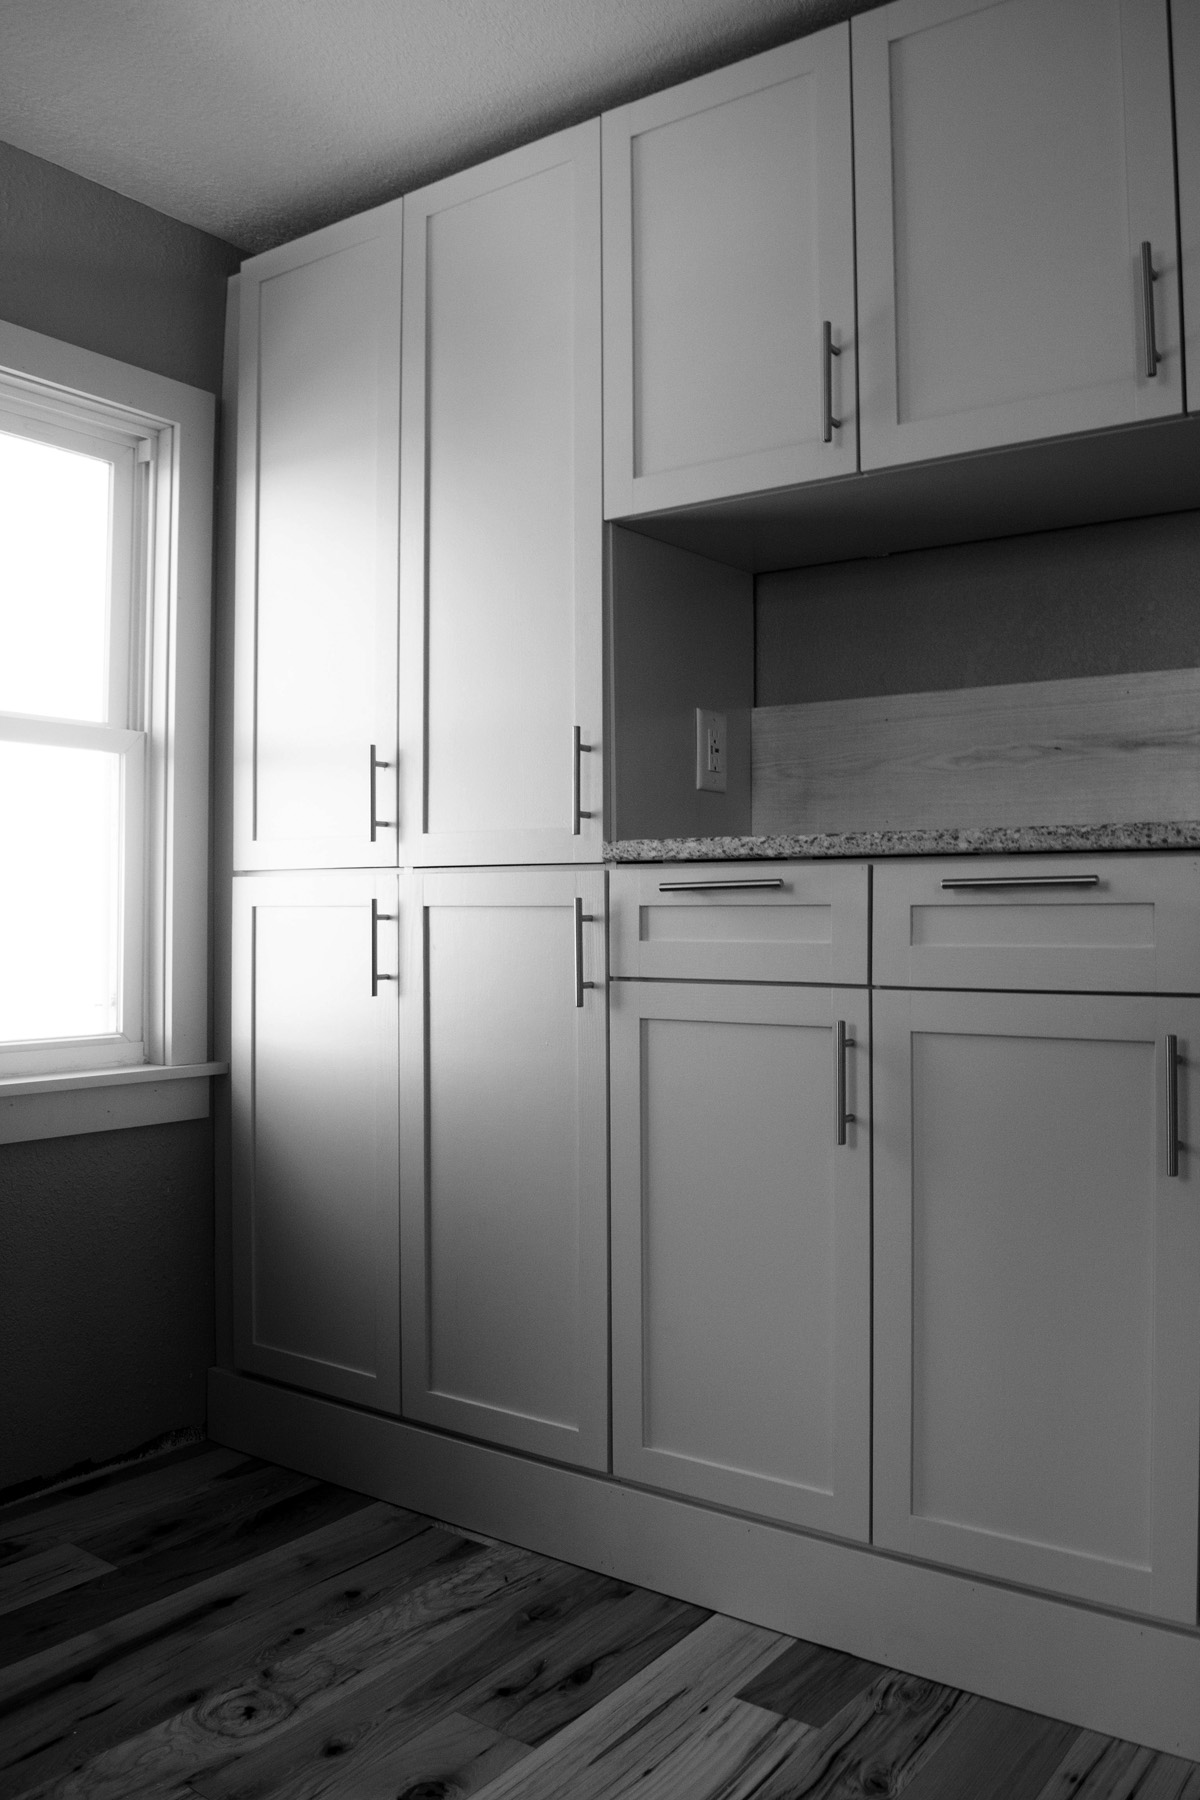 Kitchen cabinets designed and fabricated by Solstice Design Build